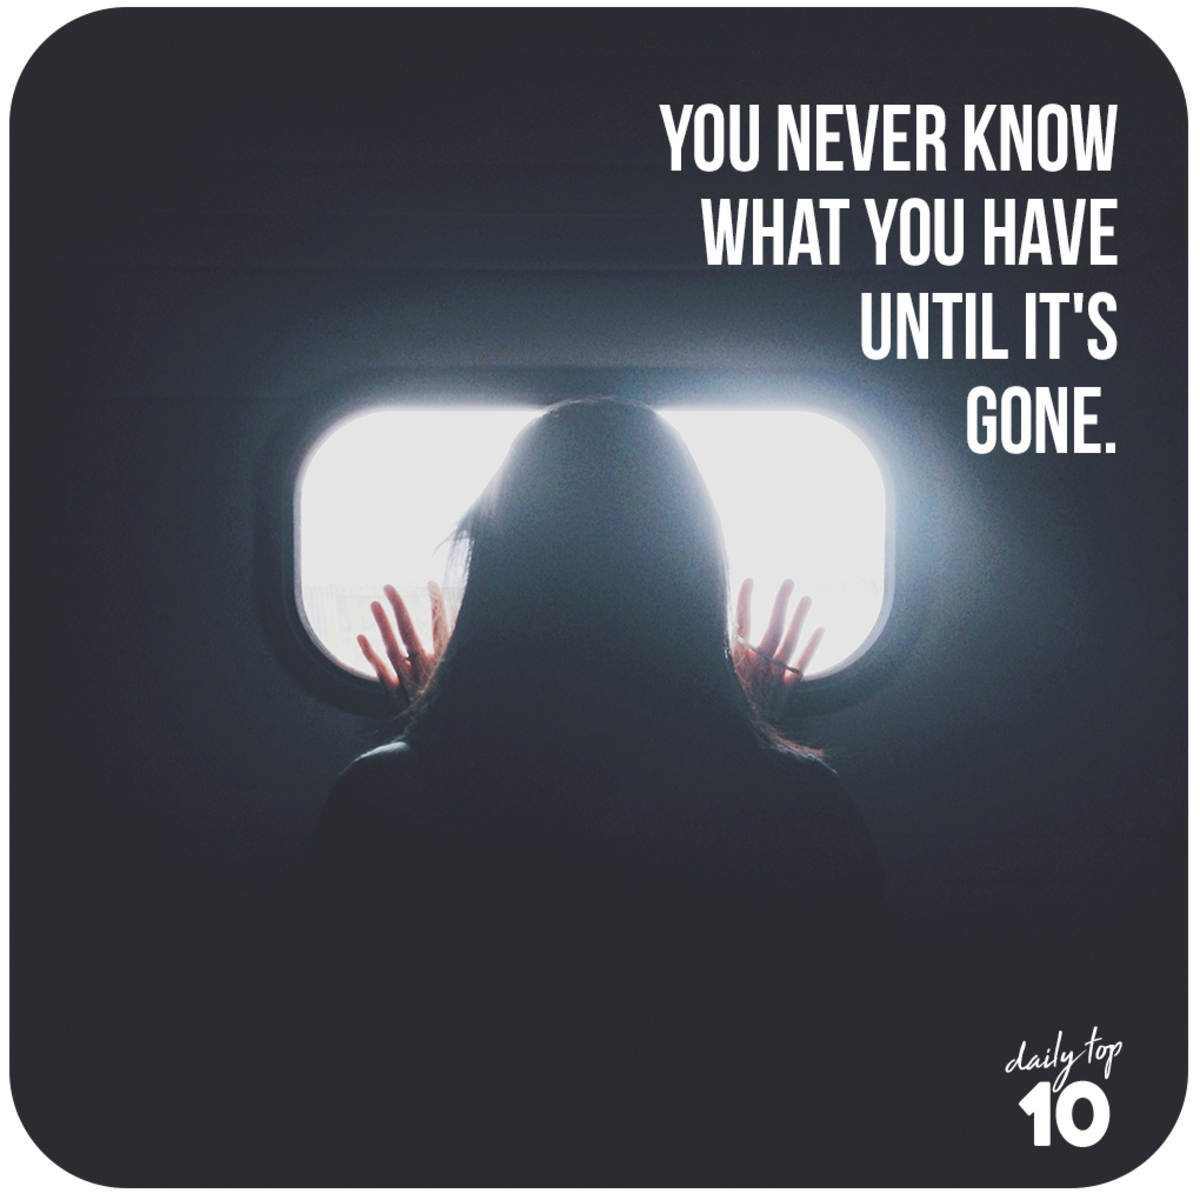 You never know what you have until it's gone.